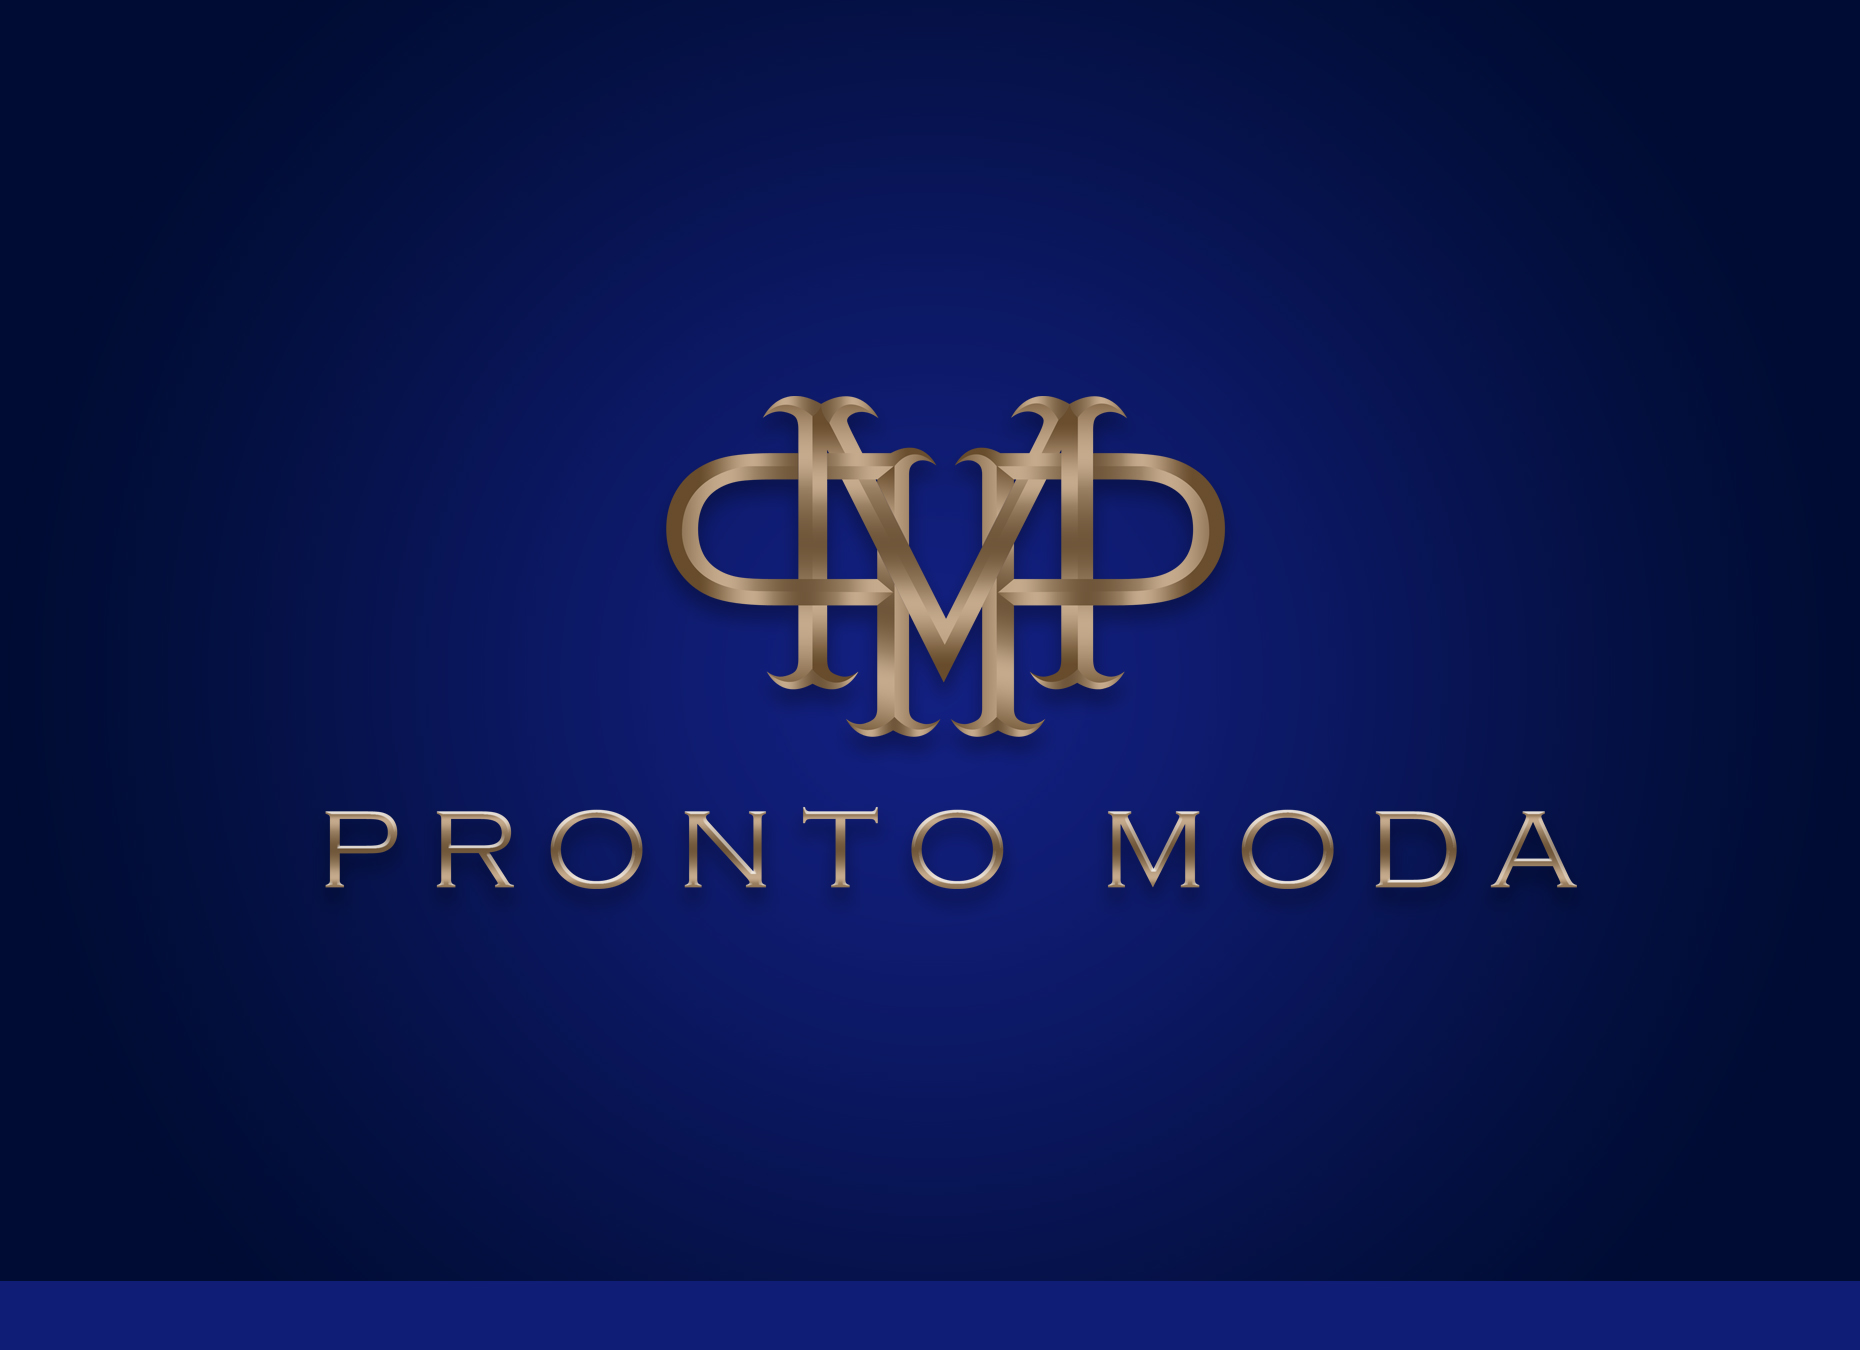 Logo Design by omARTist - Entry No. 14 in the Logo Design Contest Captivating Logo Design for Pronto moda.